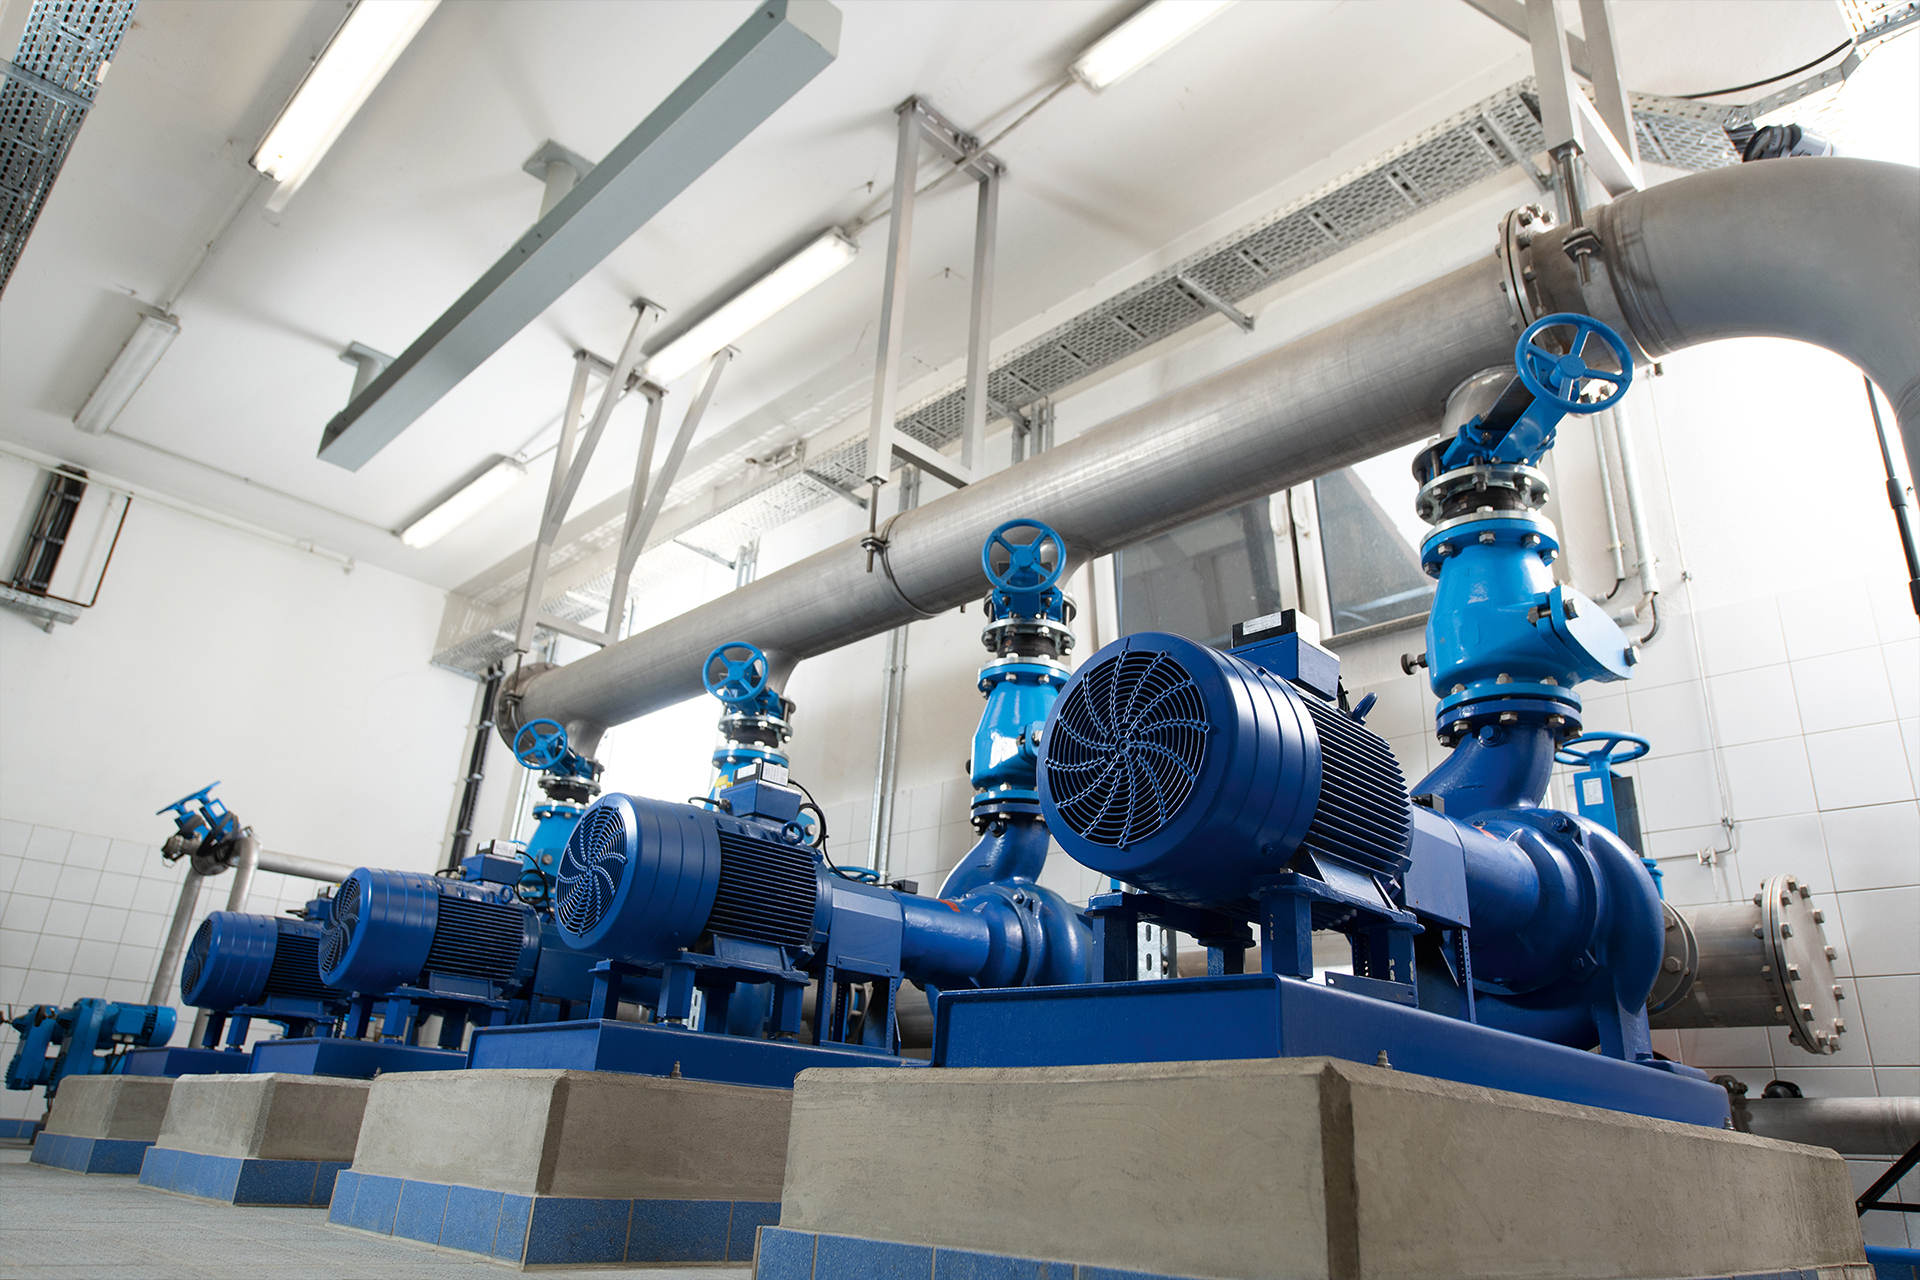 KSB Guard prevents disruption in municipal wastewater disposal